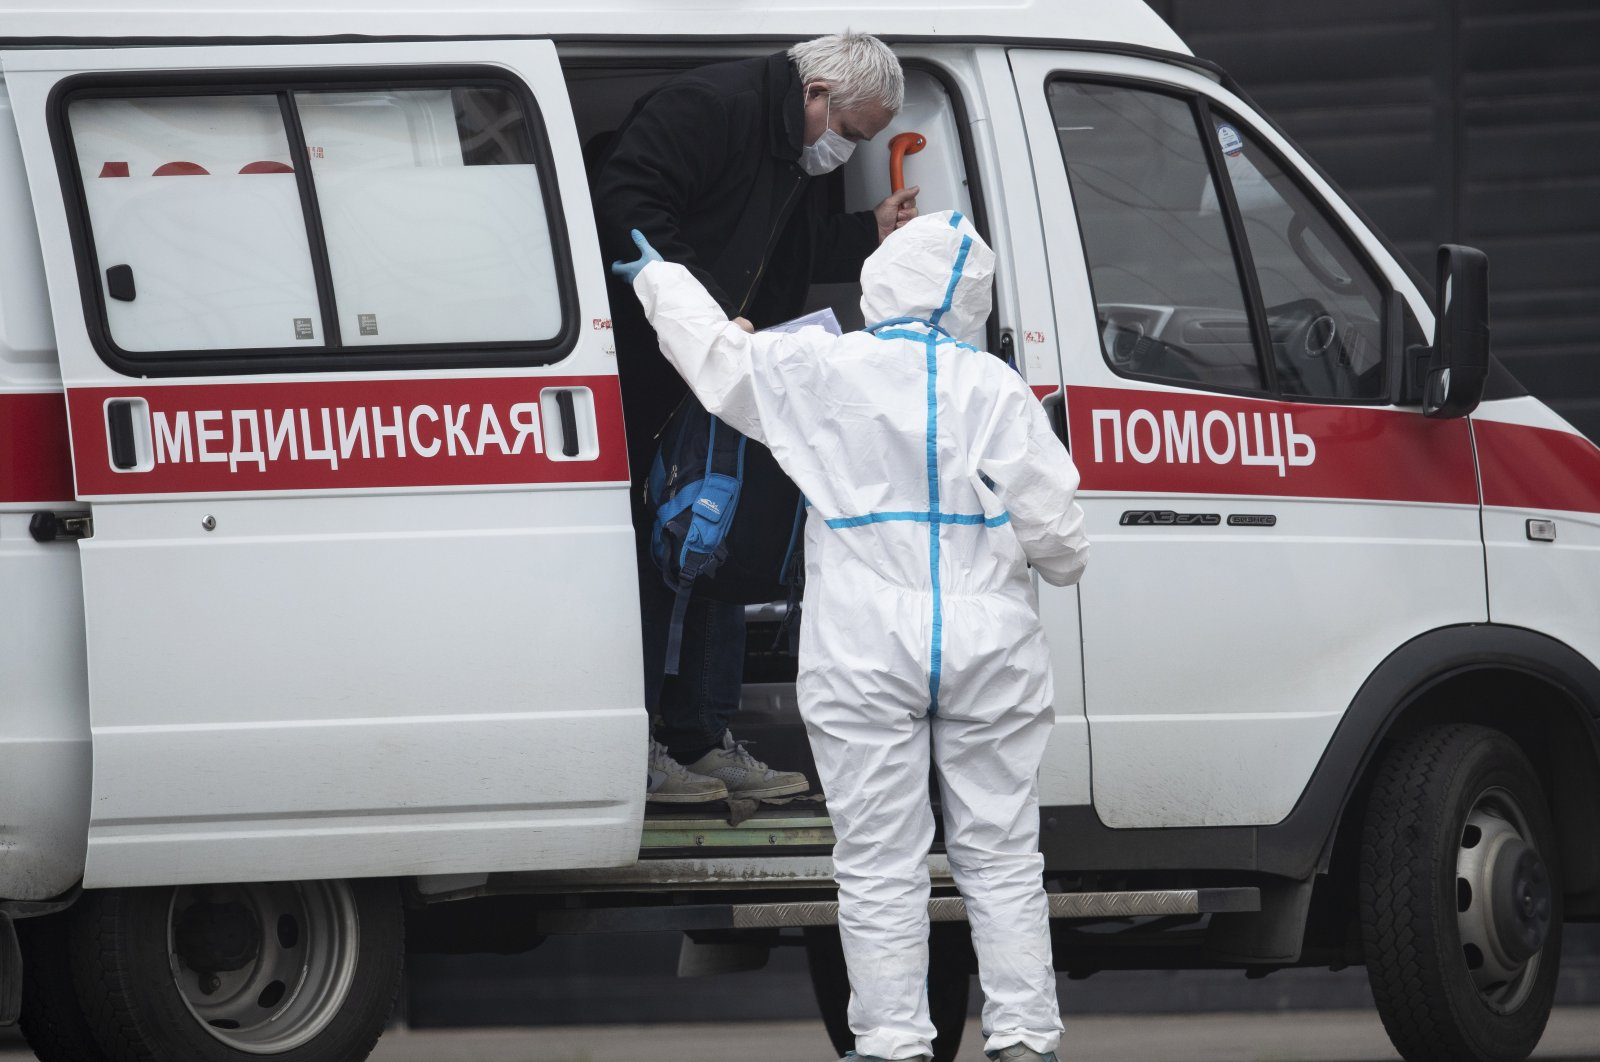 In this April 27, 2020, photo, a medical worker wearing protective gear helps a man, suspected of having the coronavirus infection, to get out from an ambulance at a hospital in Kommunarka, outside Moscow, Russia. (AP Photo)